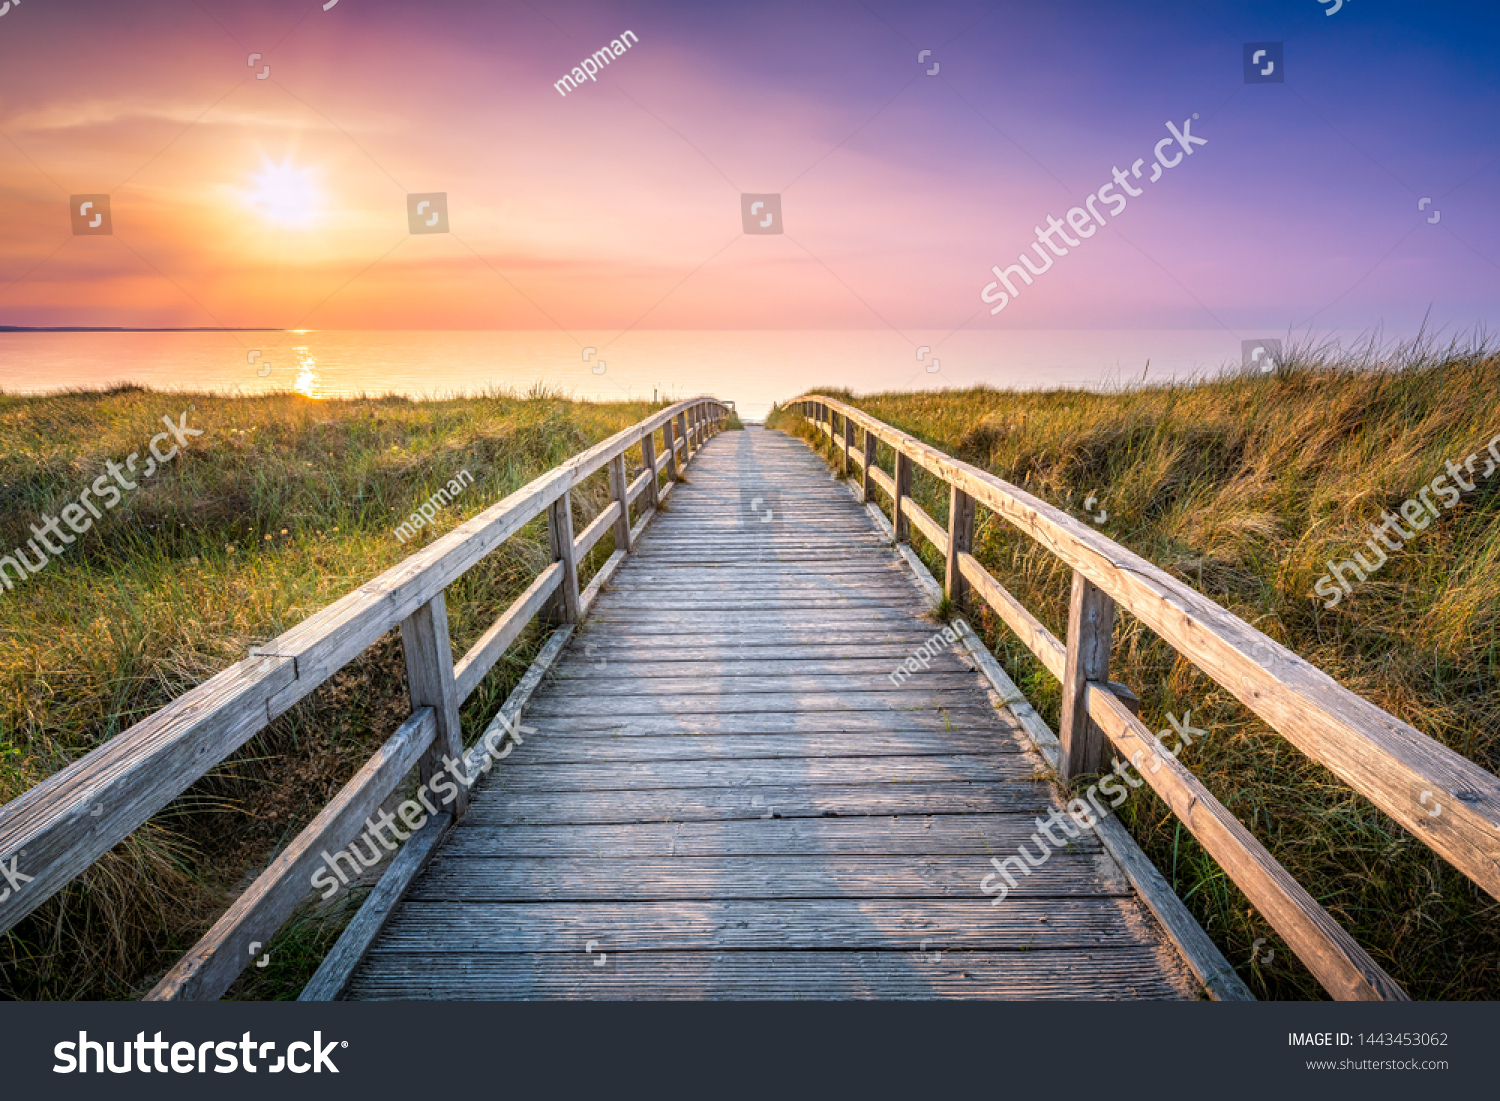 Wooden pier at sunset along the dune beach, North Sea, Germany #1443453062